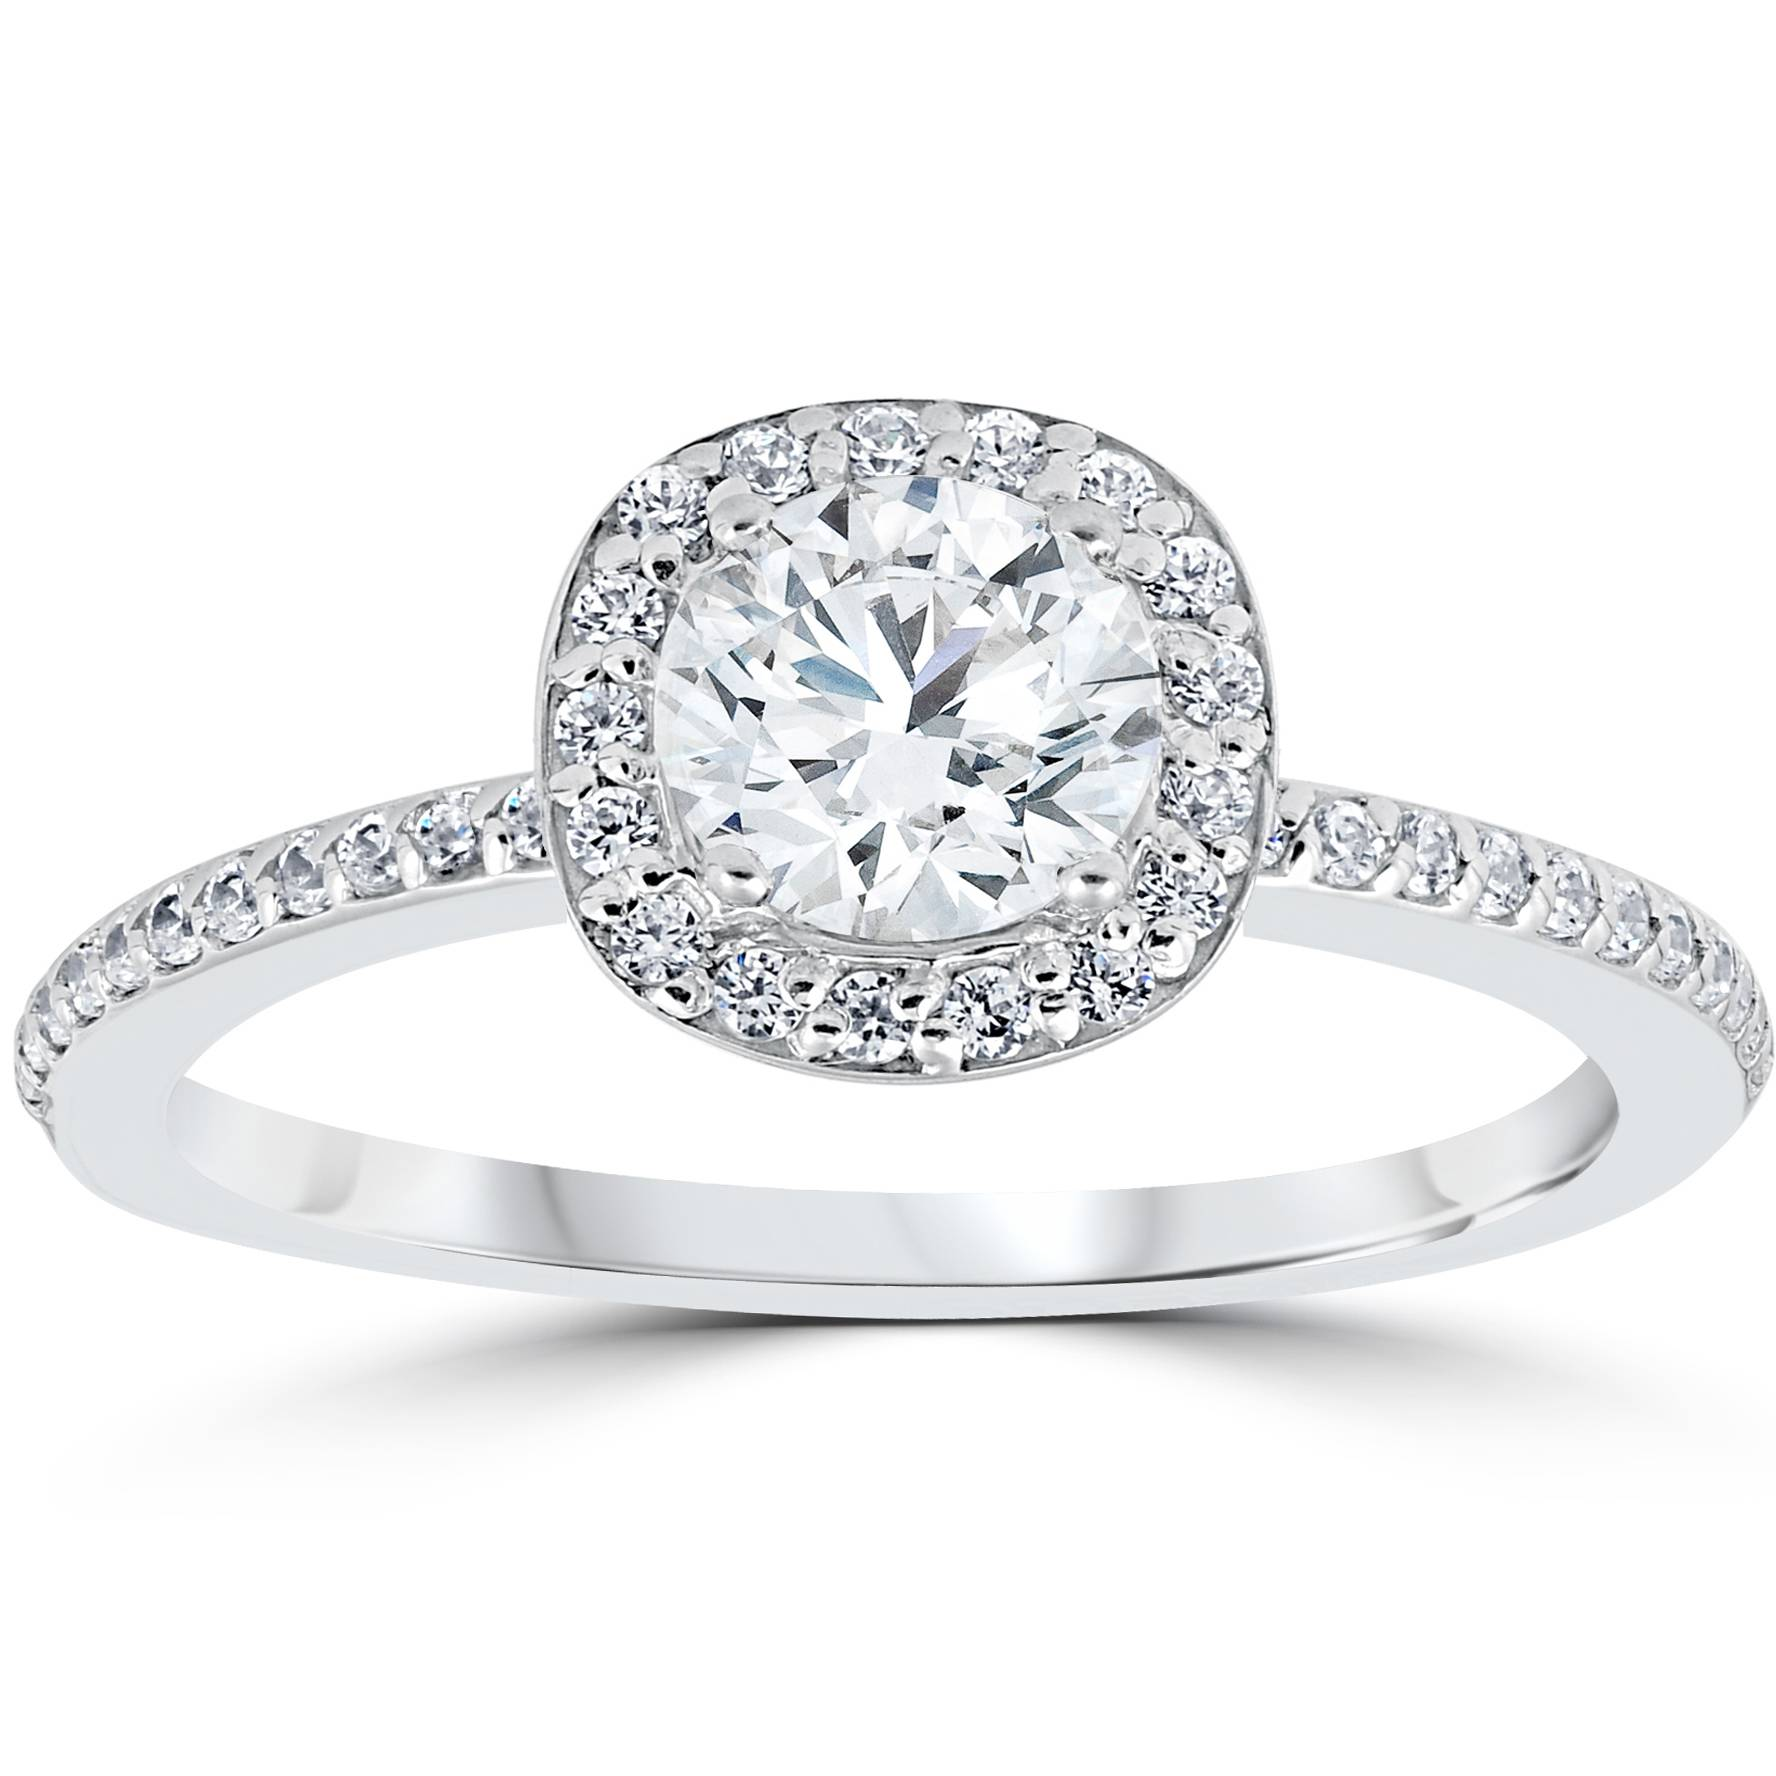 1ct Diamond Engagement Ring Cushion Halo Vintage Solitaire 14K